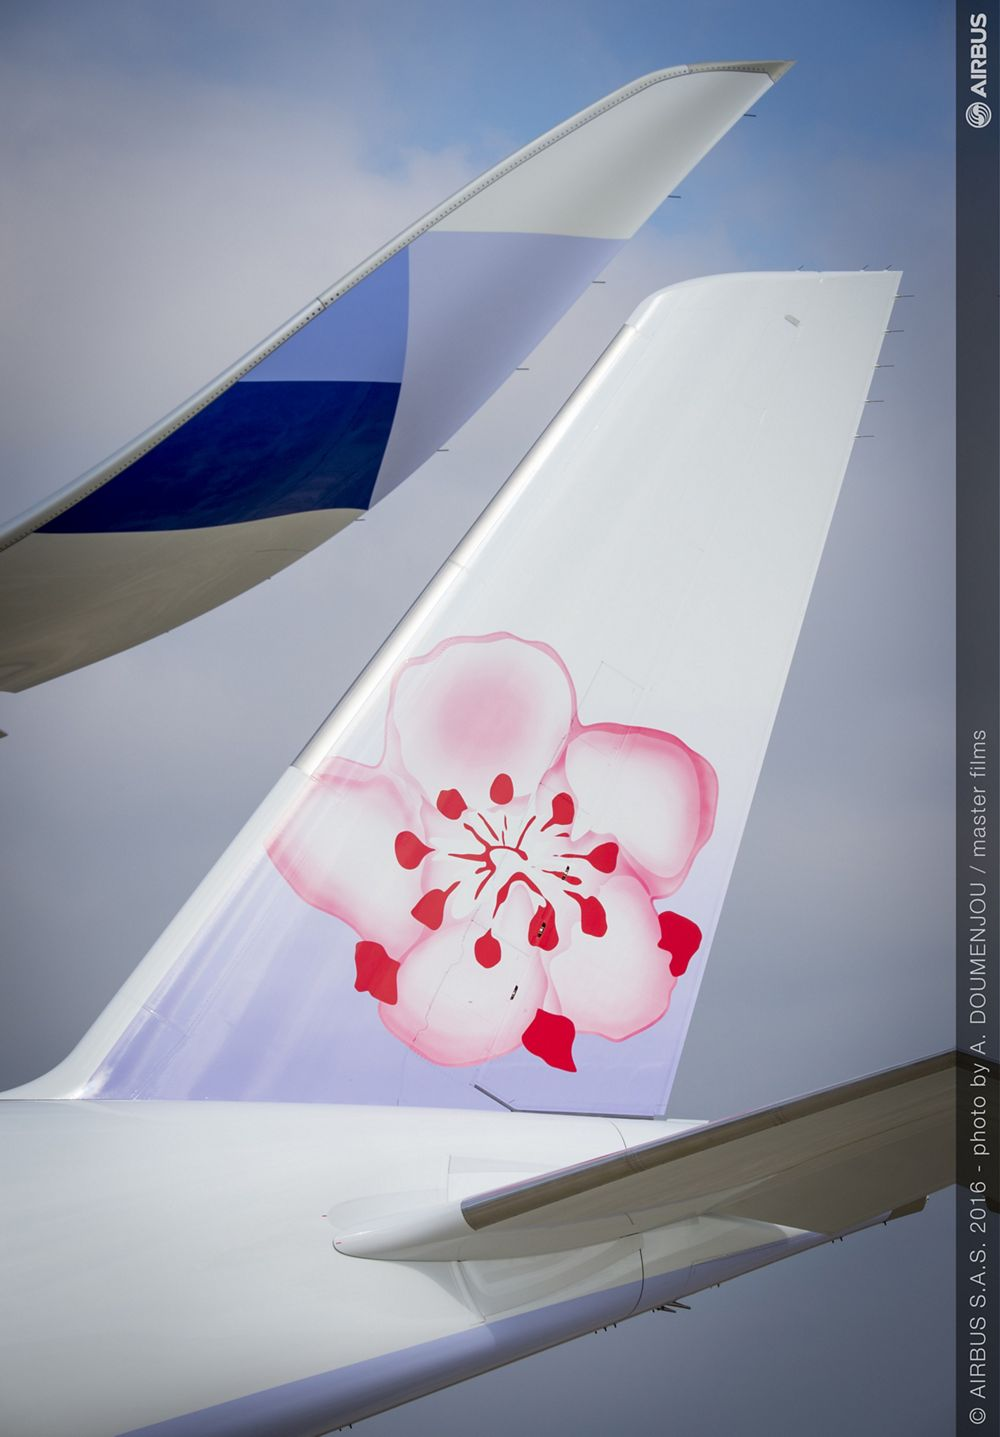 China Airlines' first A350 XWB_delivery 3